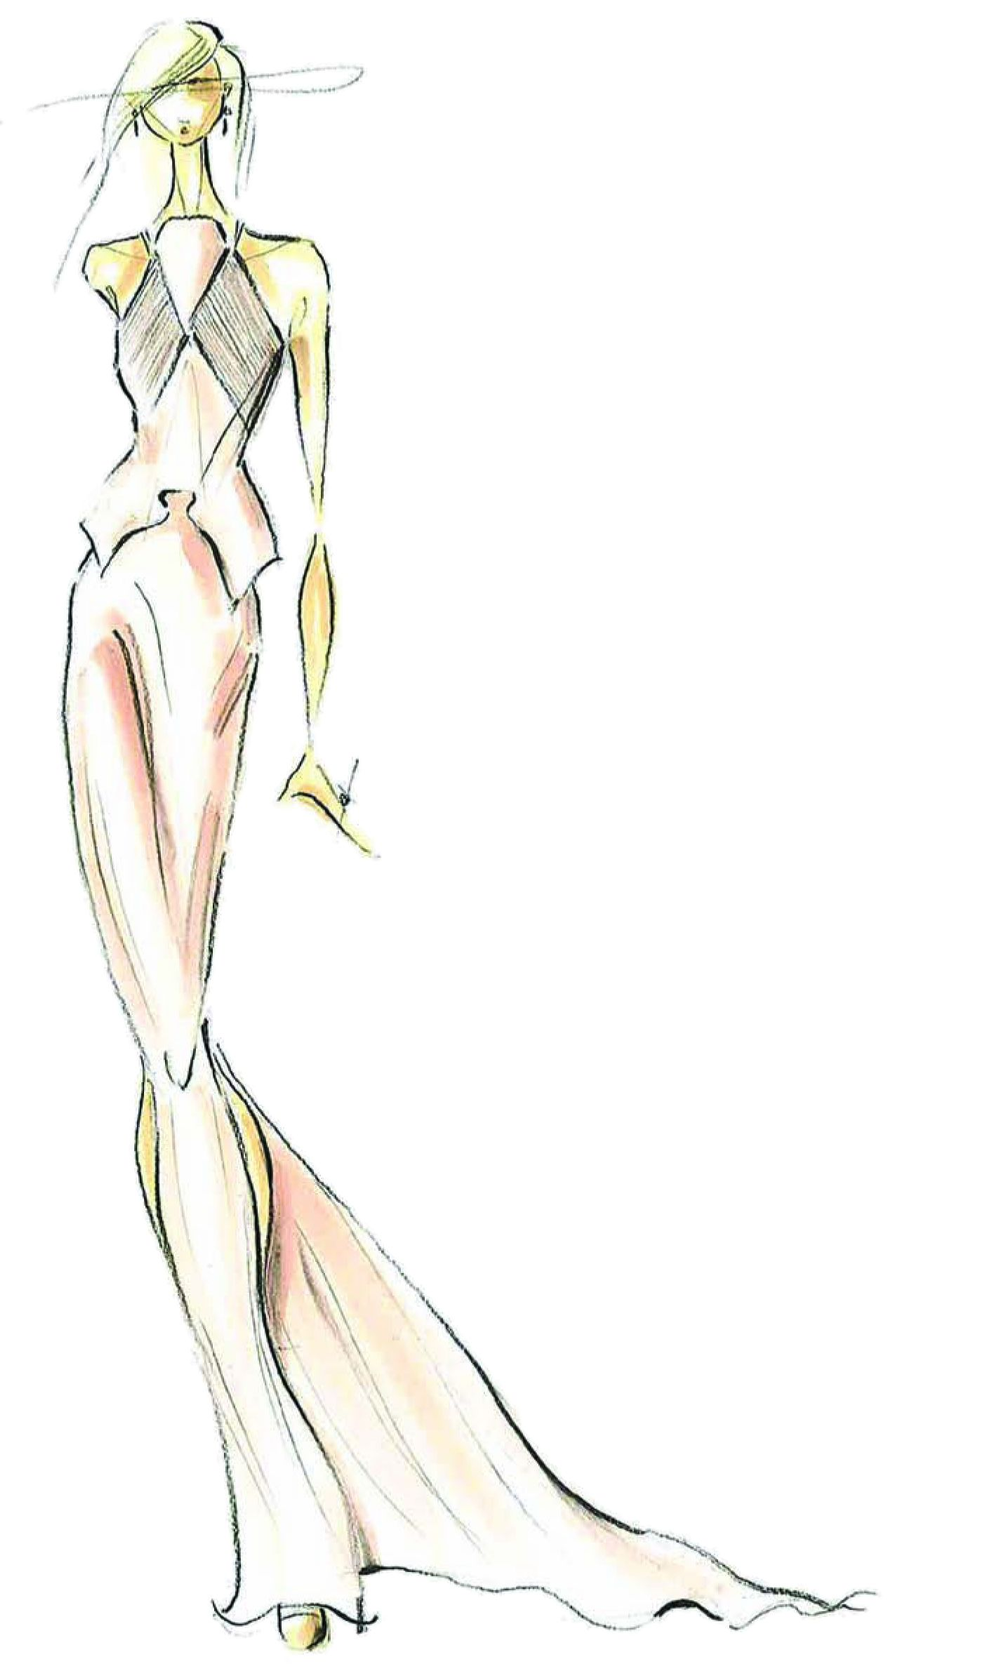 <p><strong>Linen</strong> is light and airy, providing a nude-like basic that is a must have for spring. <em>Illustration by Pamella Roland by Pamella DeVos. Originally appeared in The Pantone Fashion Color Report Spring 2013.</em></p>